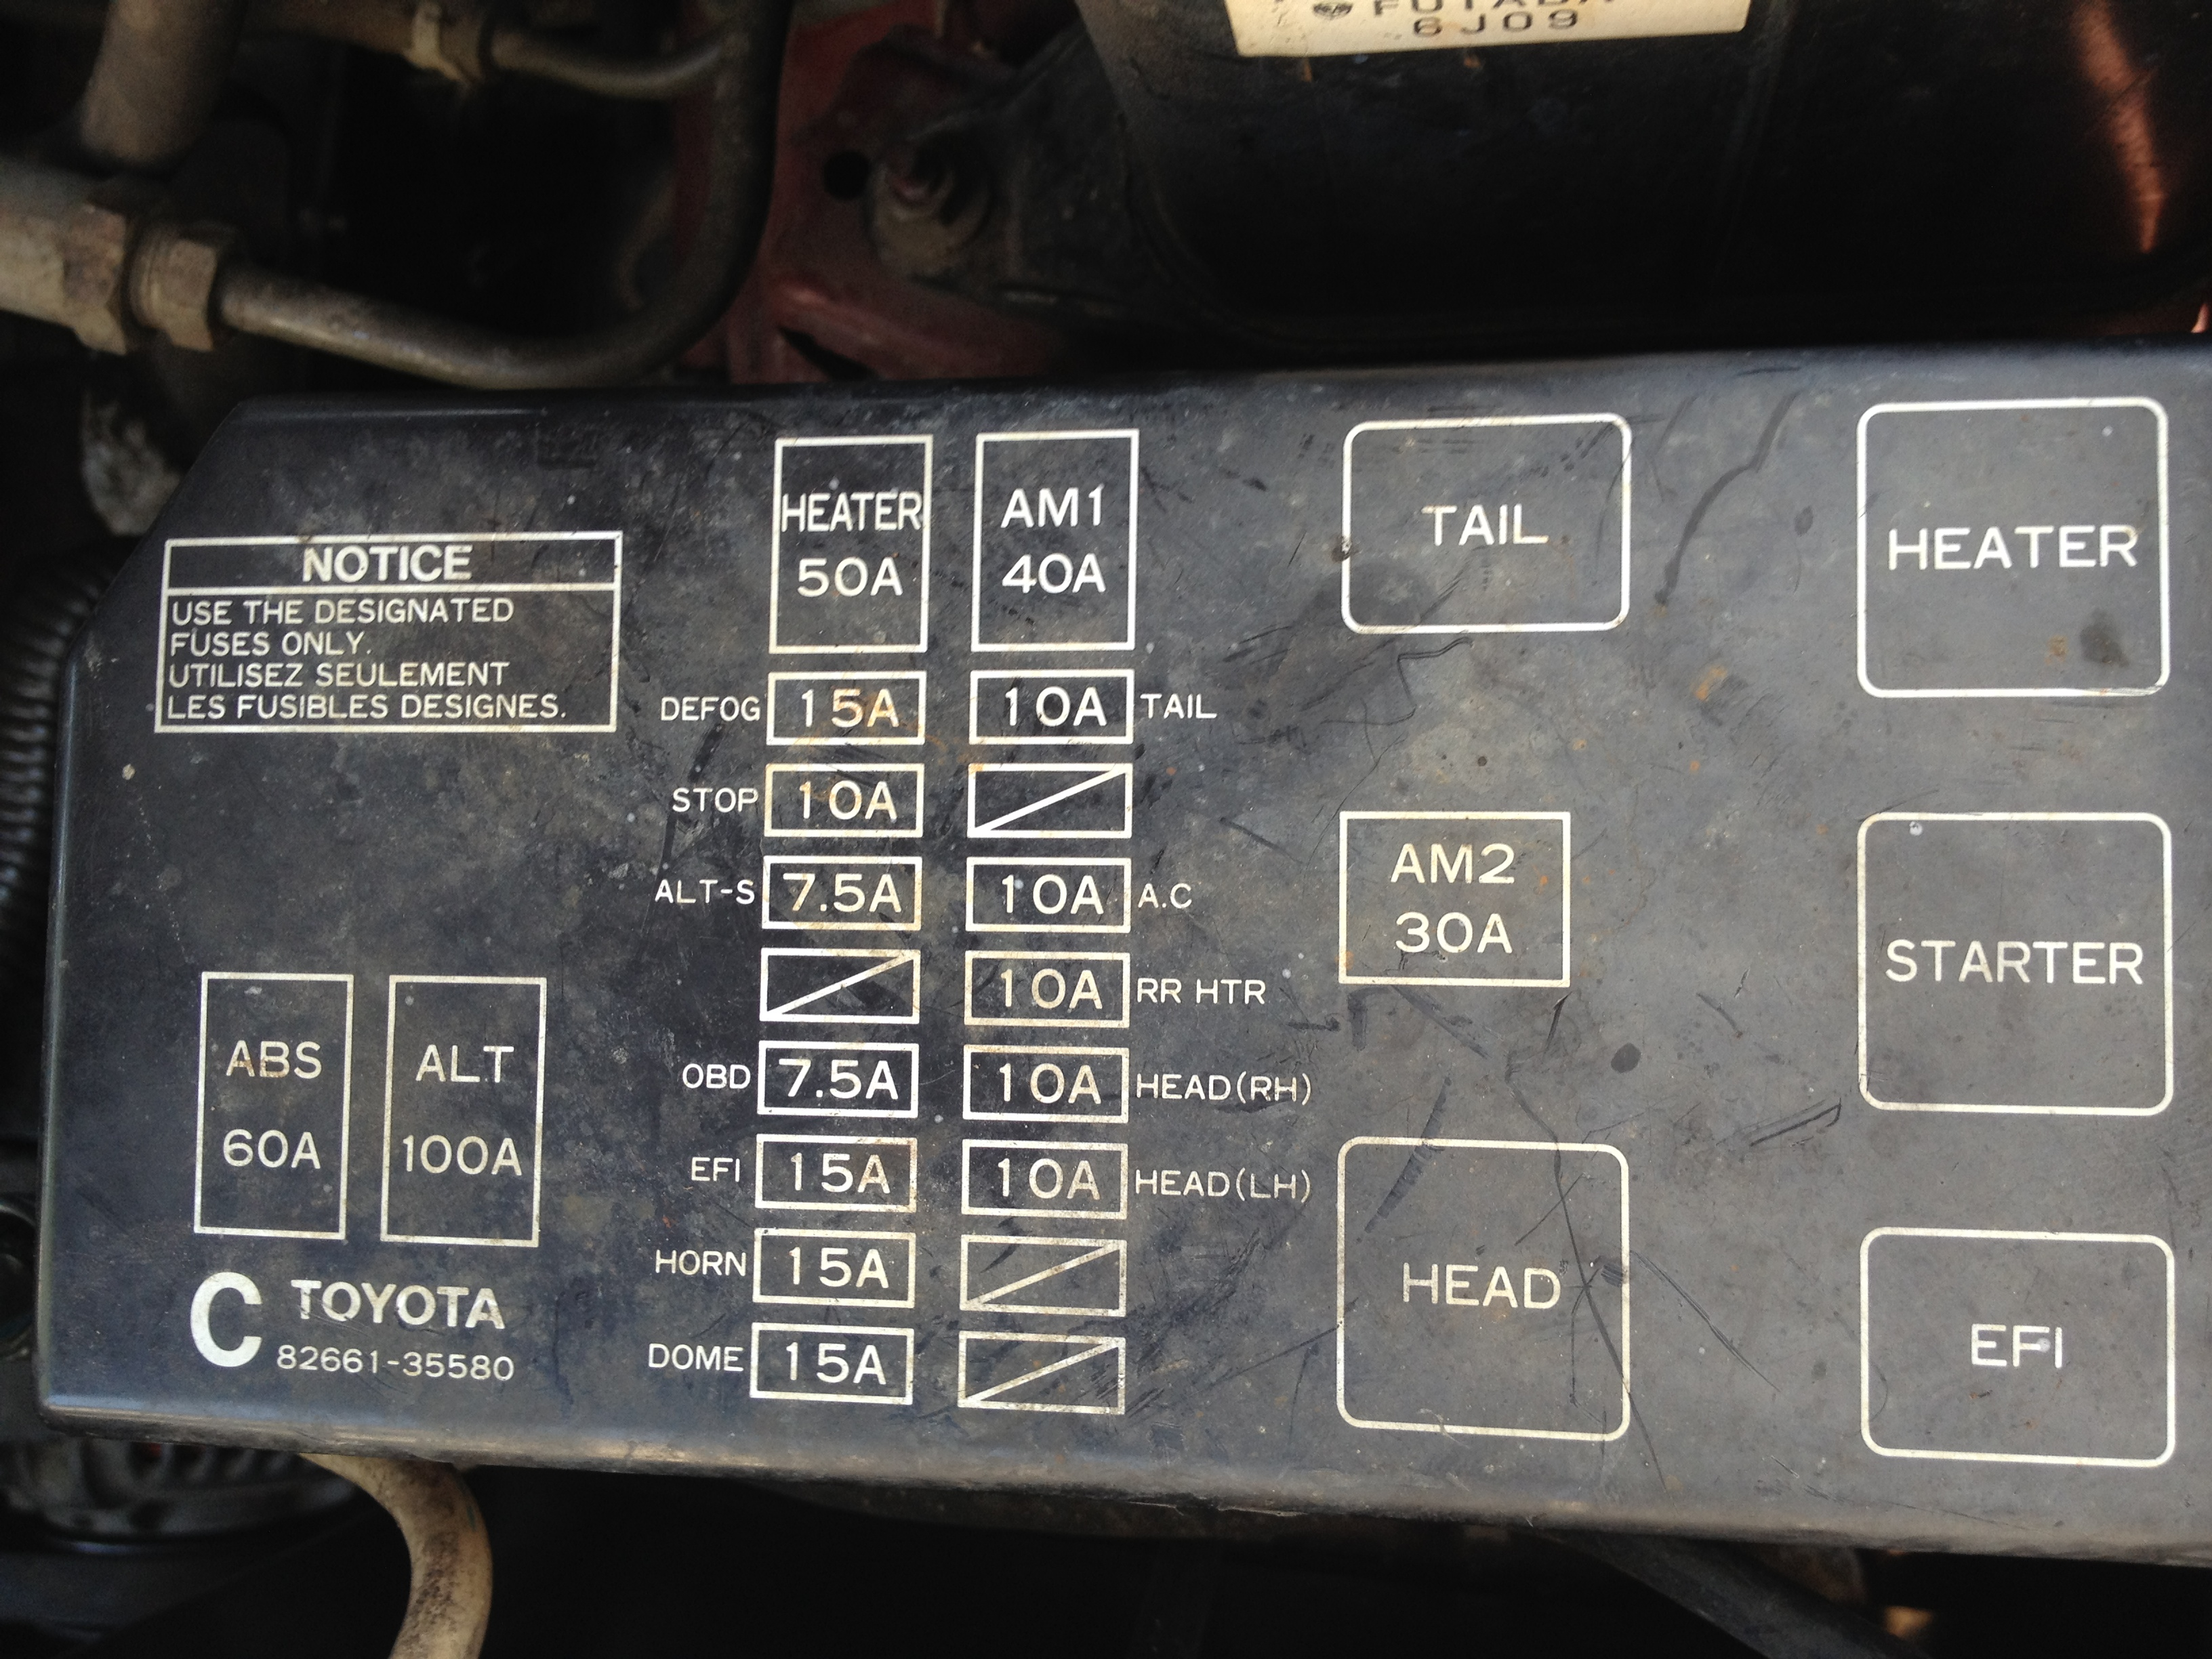 1996 Toyota Tacoma Fuse Box Diagram General Wiring 2005 4runner Location Car U2022 Rh Suntse De